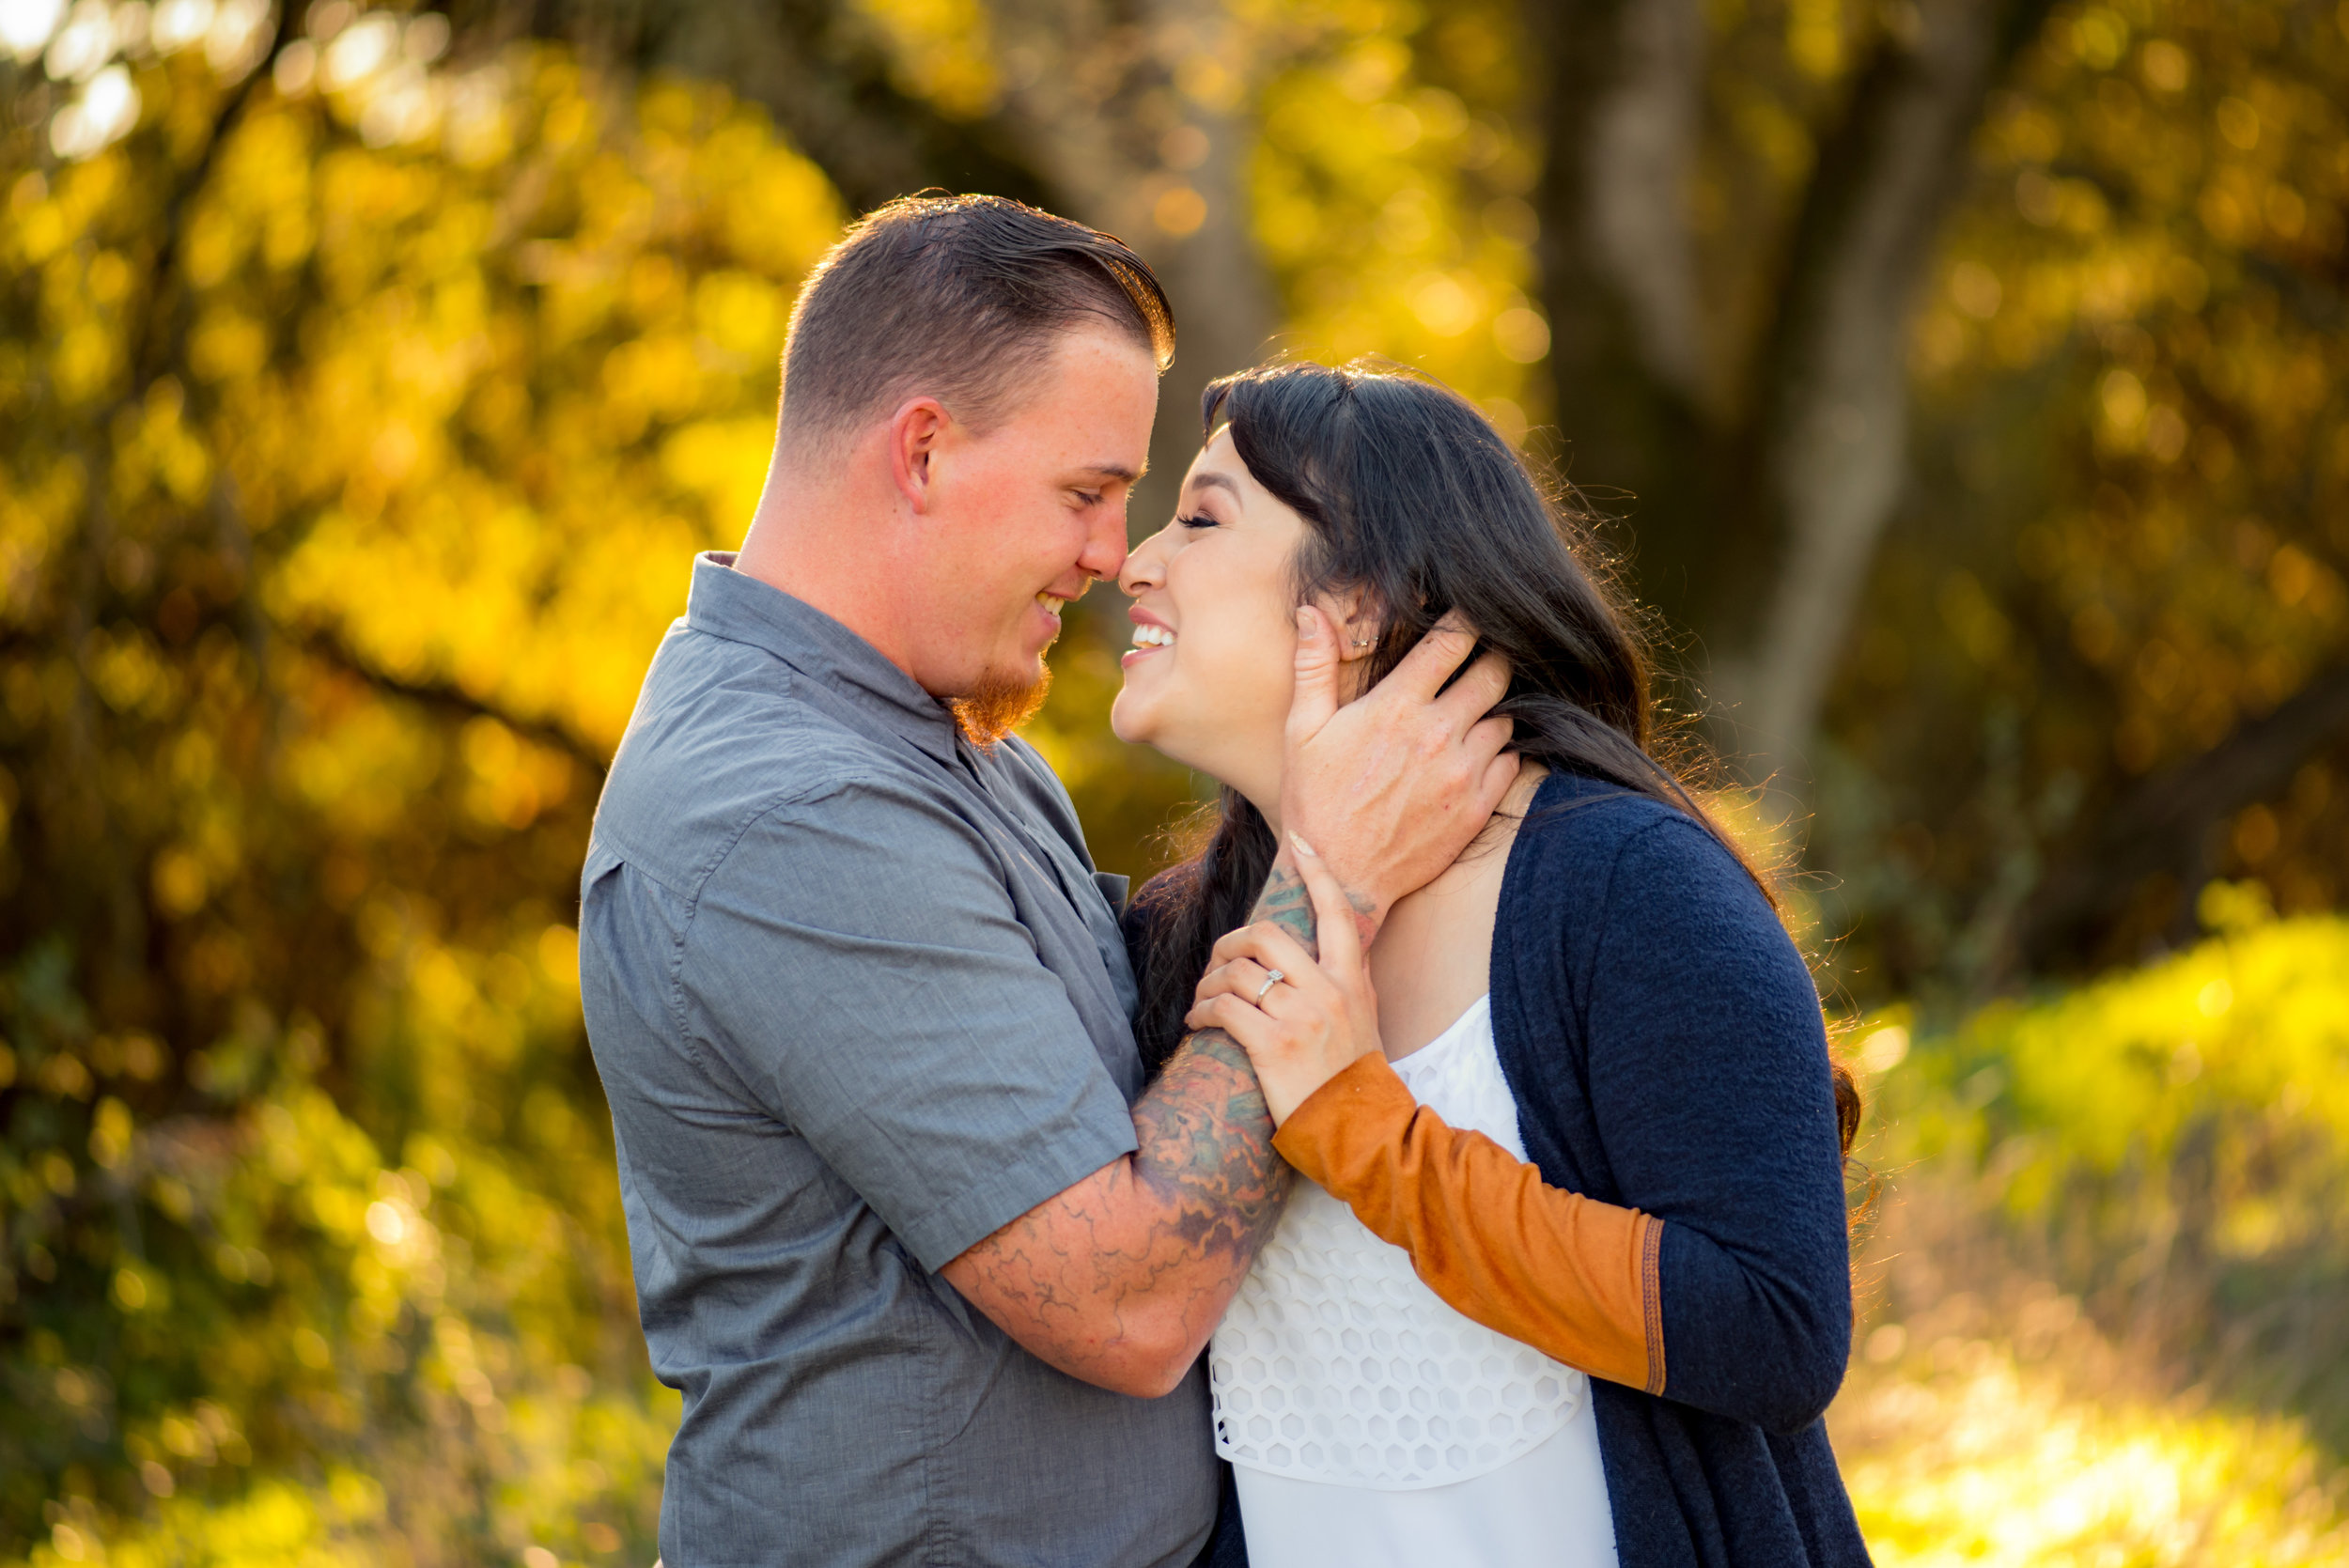 erica-garrett-006-sacramento-engagement-wedding-photographer-katherine-nicole-photography.JPG